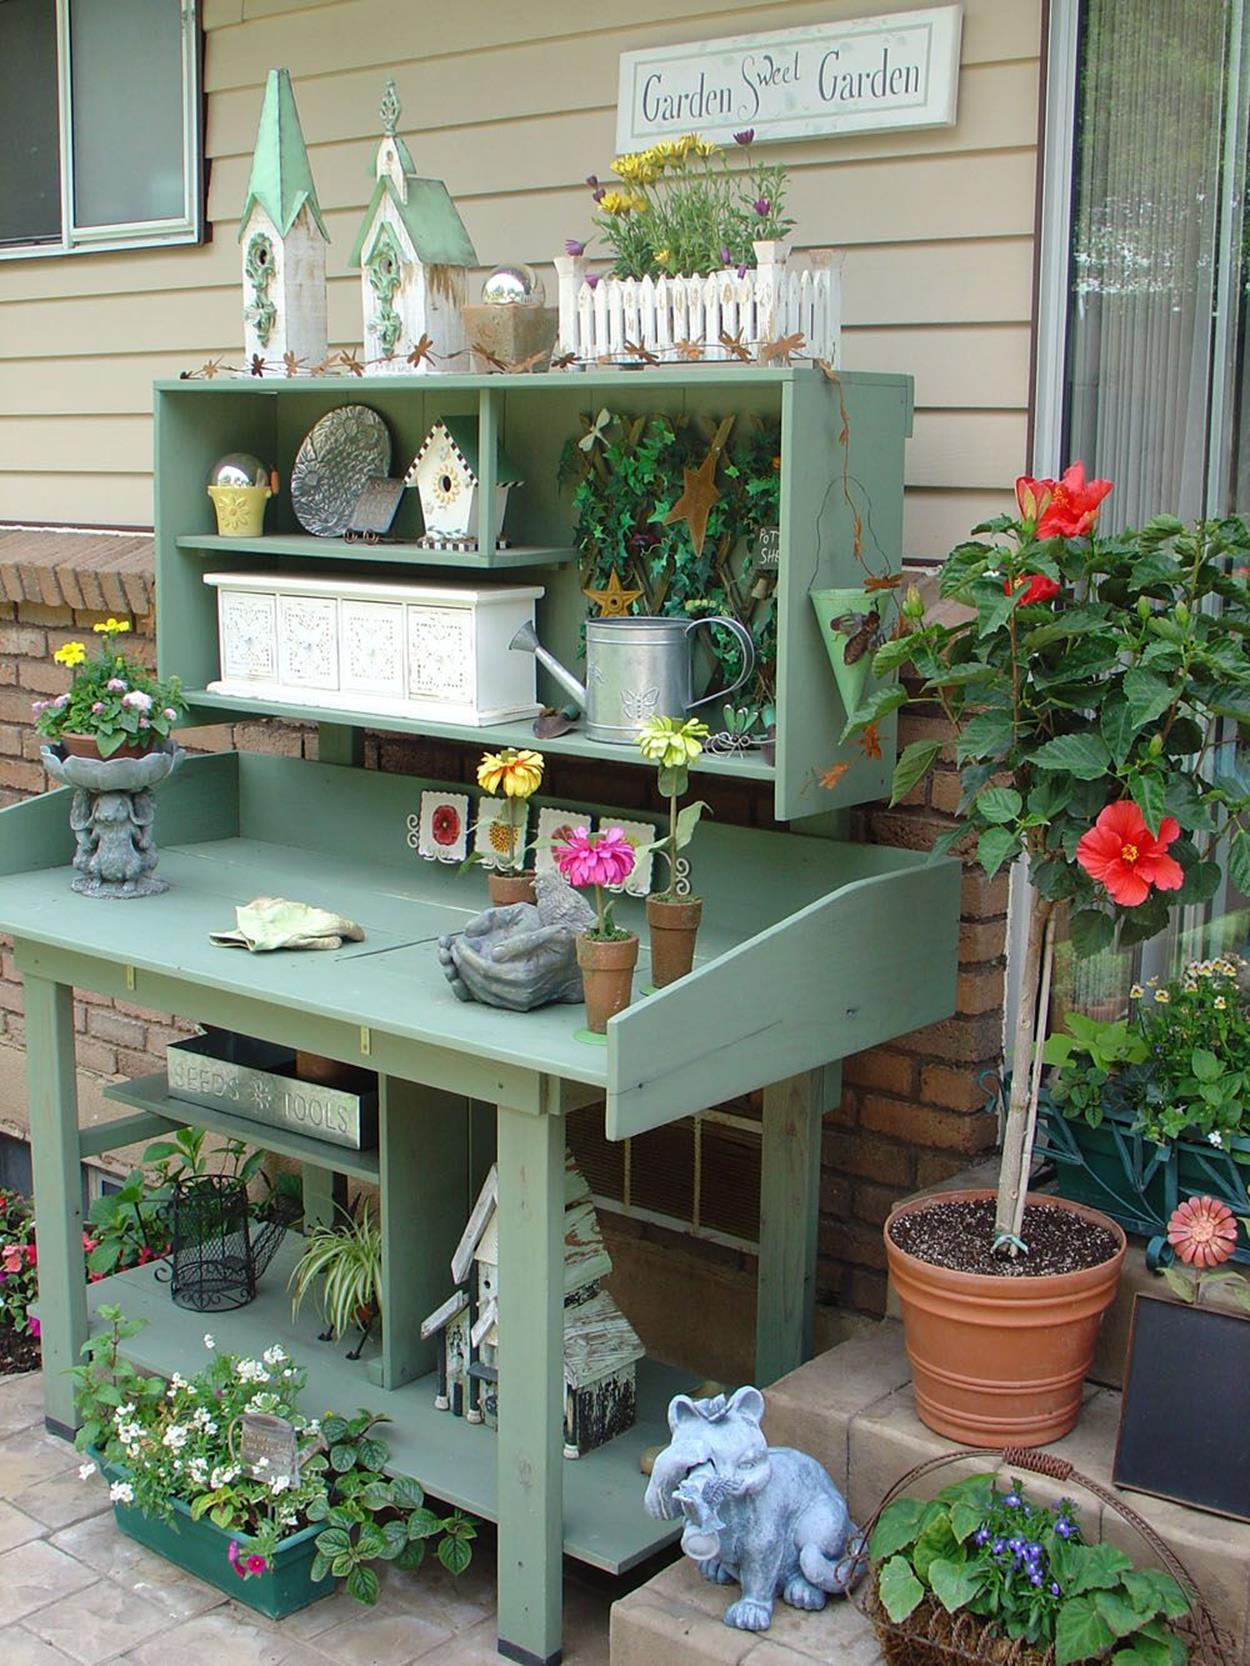 38 Charming Outdoor Garden Potting Bench Design Ideas